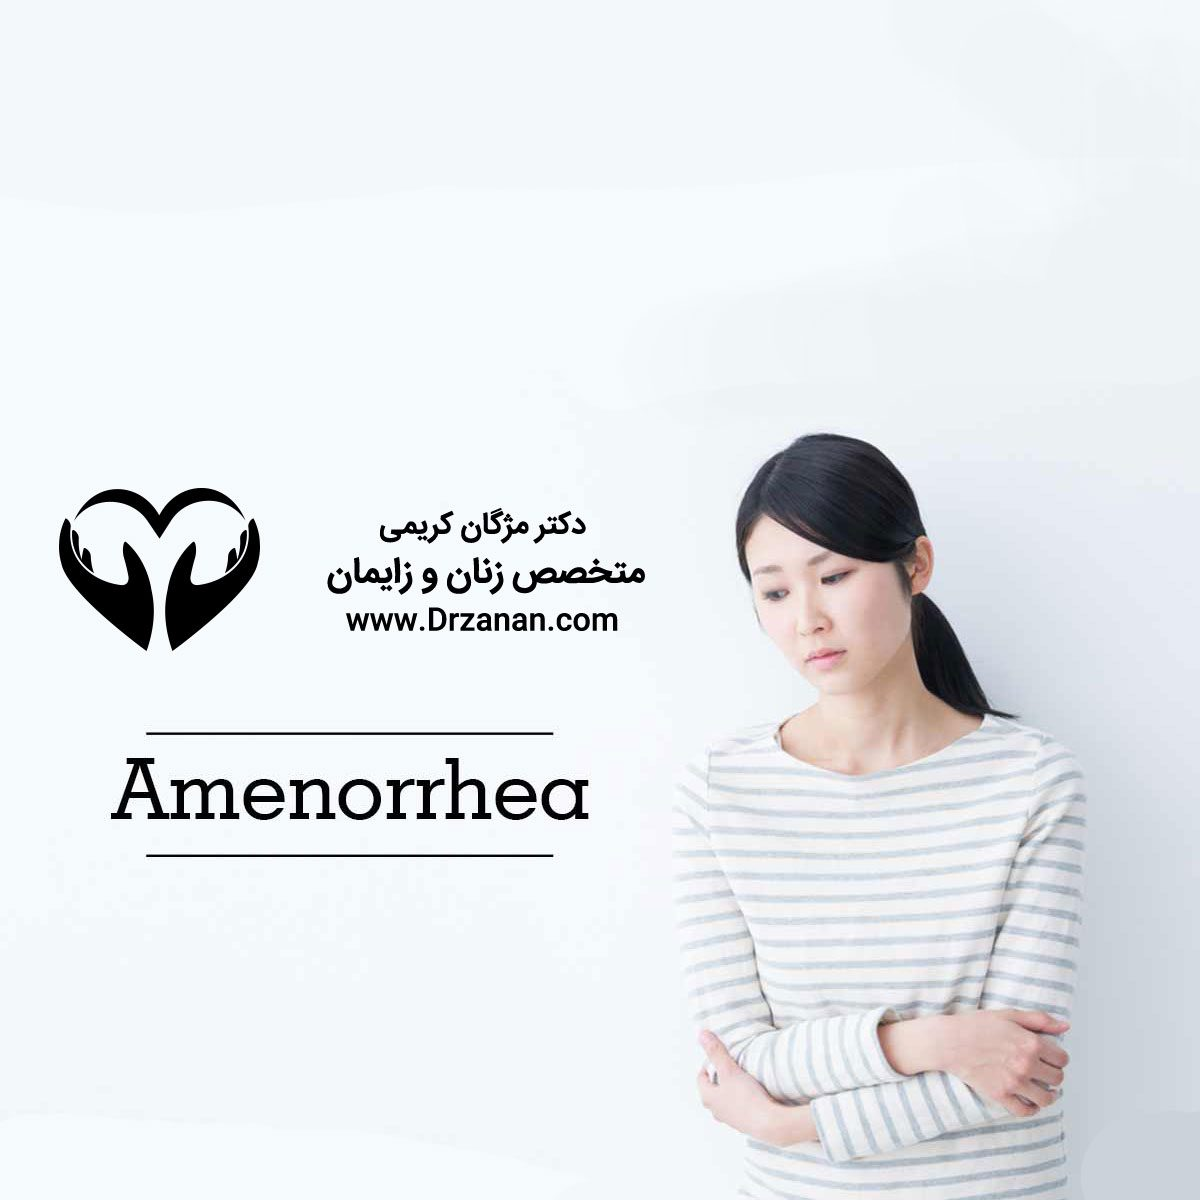 is-it-unusual-for-a-girl-or-for-an-amenorrhea-2-1200x1200.jpg